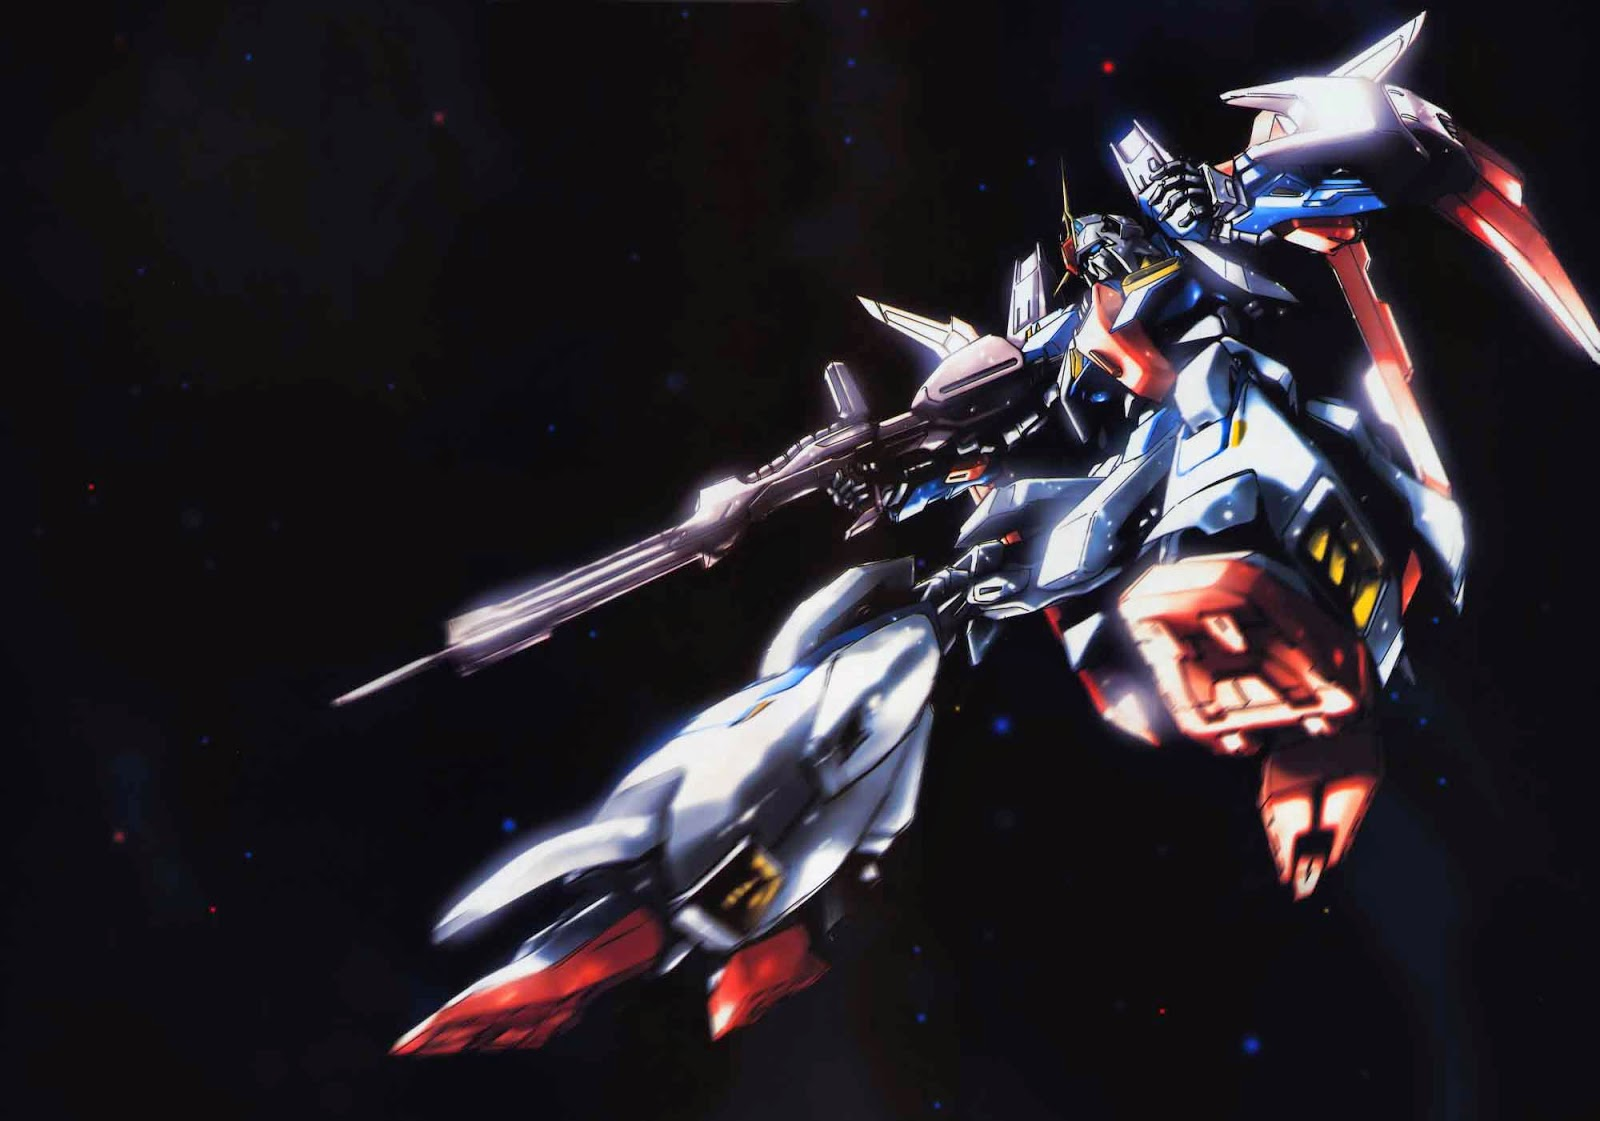 Zeta Gundam Wallpaper No Texts Gundam Kits Collection News And